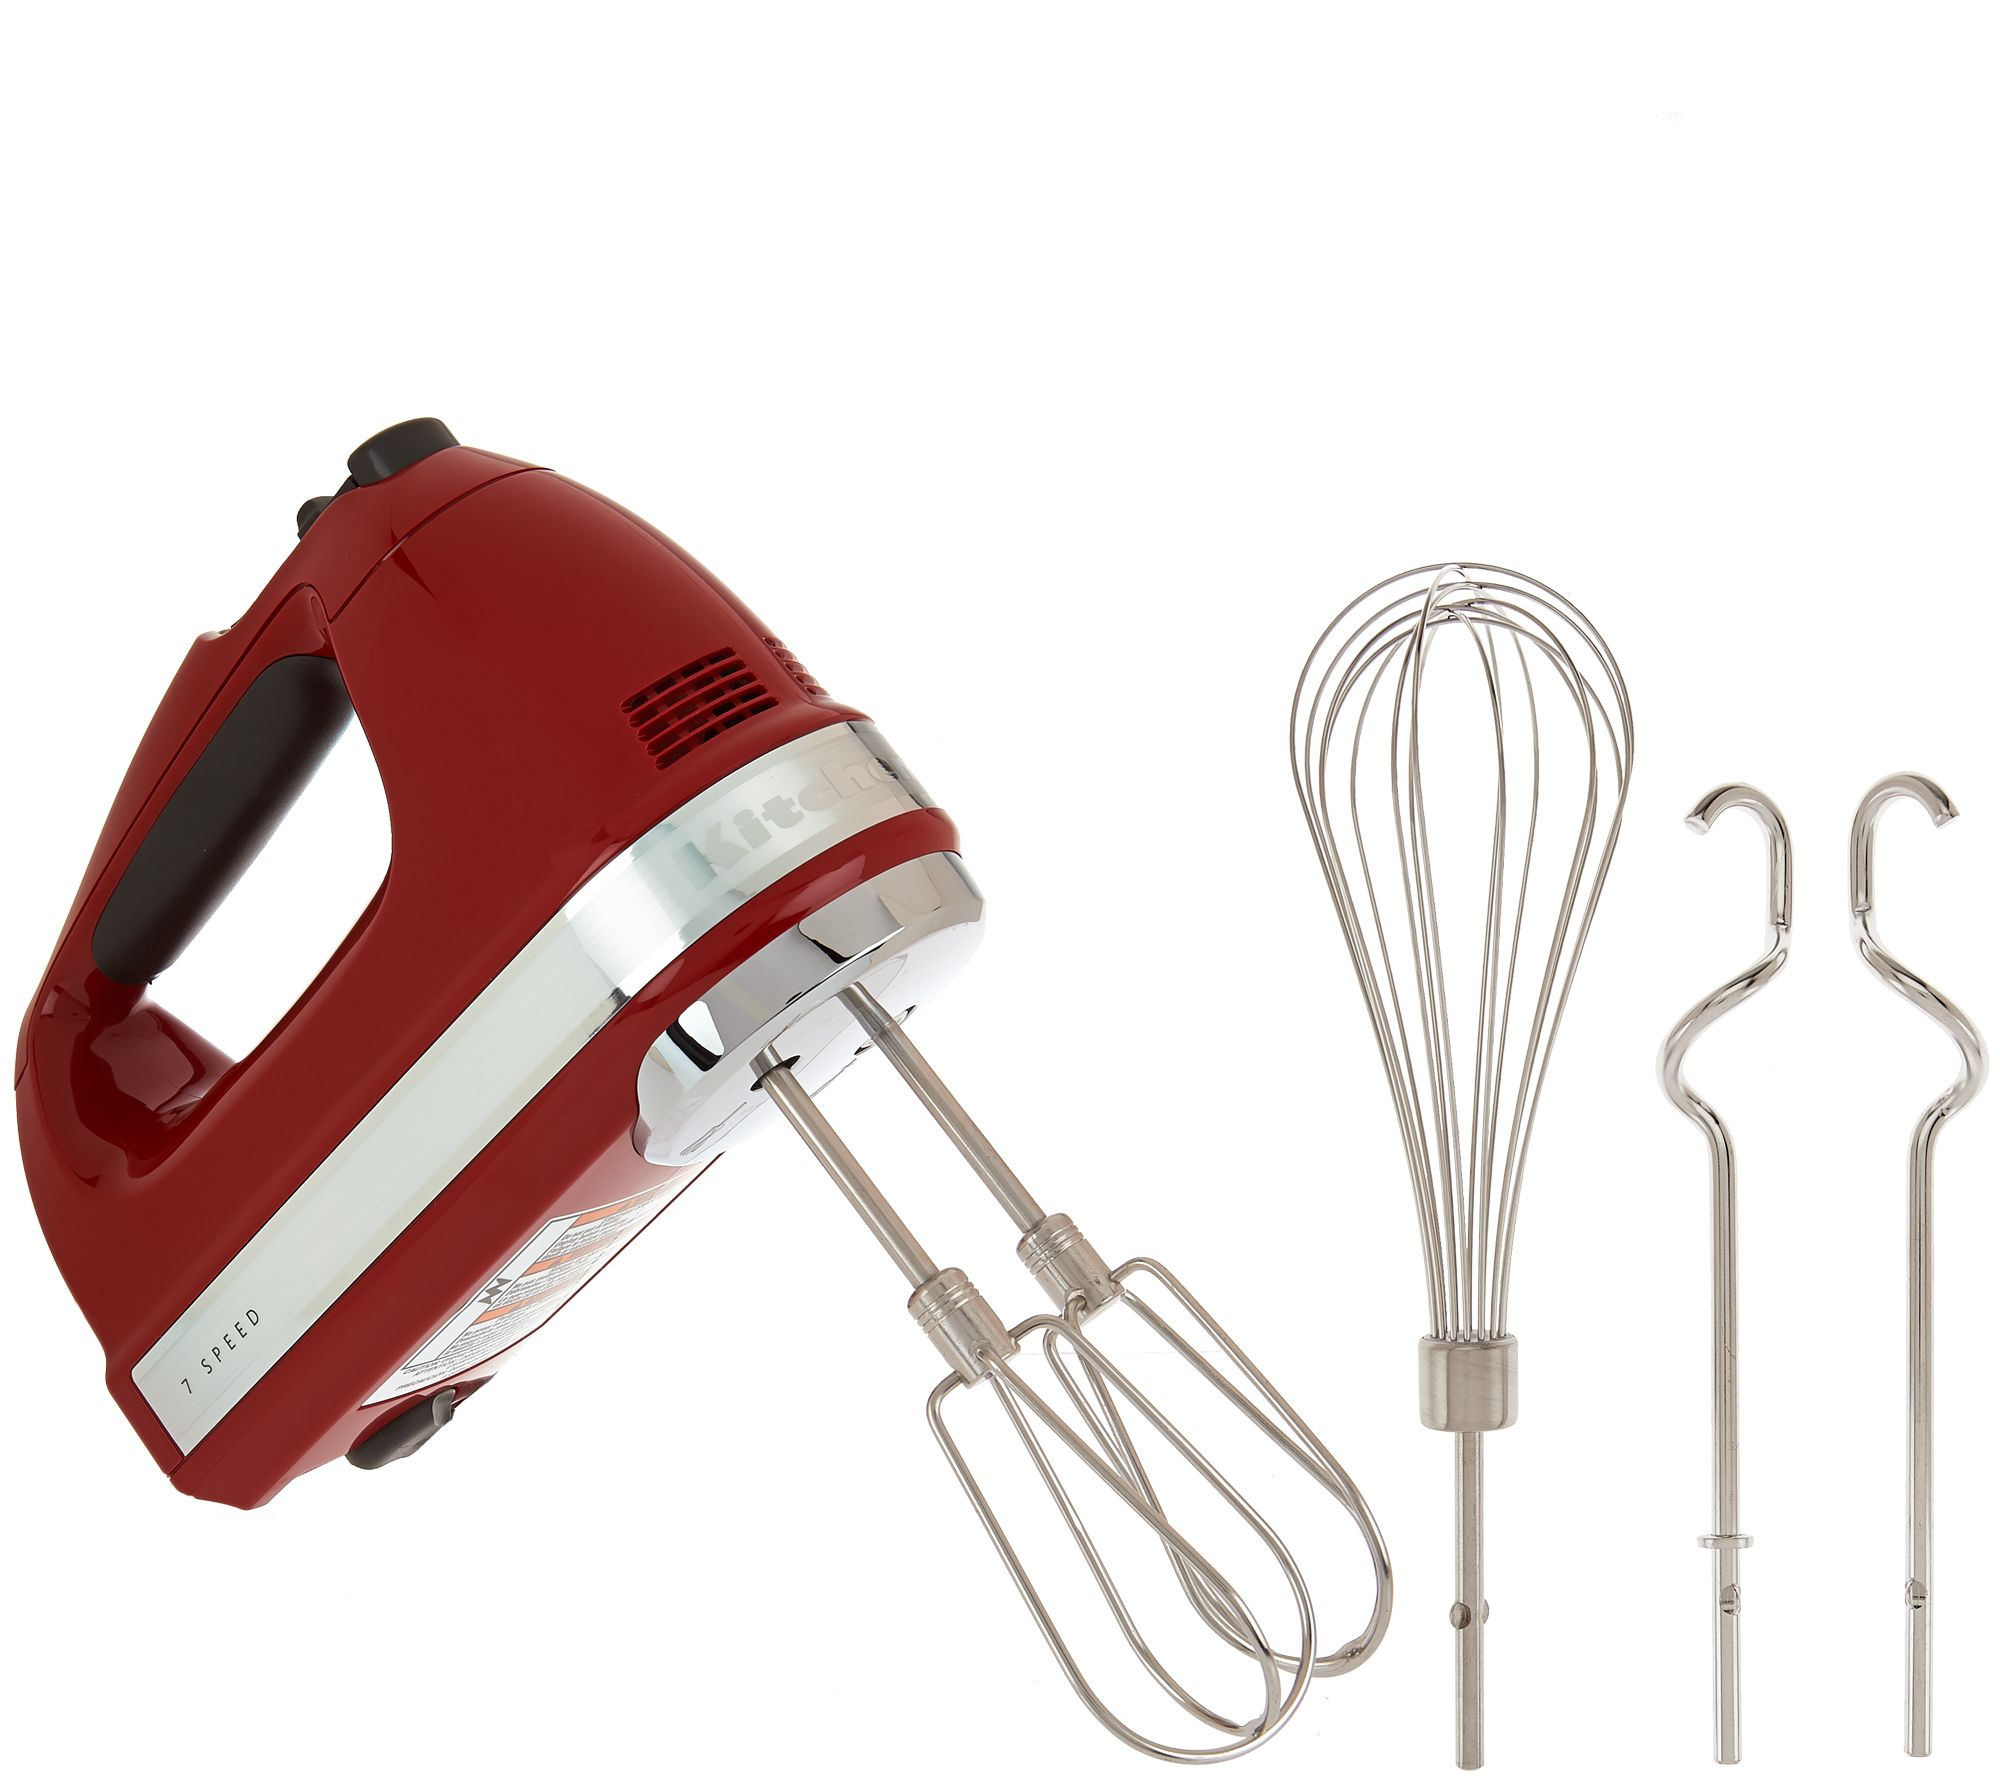 Kitchenaid 7 Sd Digital Hand Mixer With Dough Hooks Page 1 Qvc